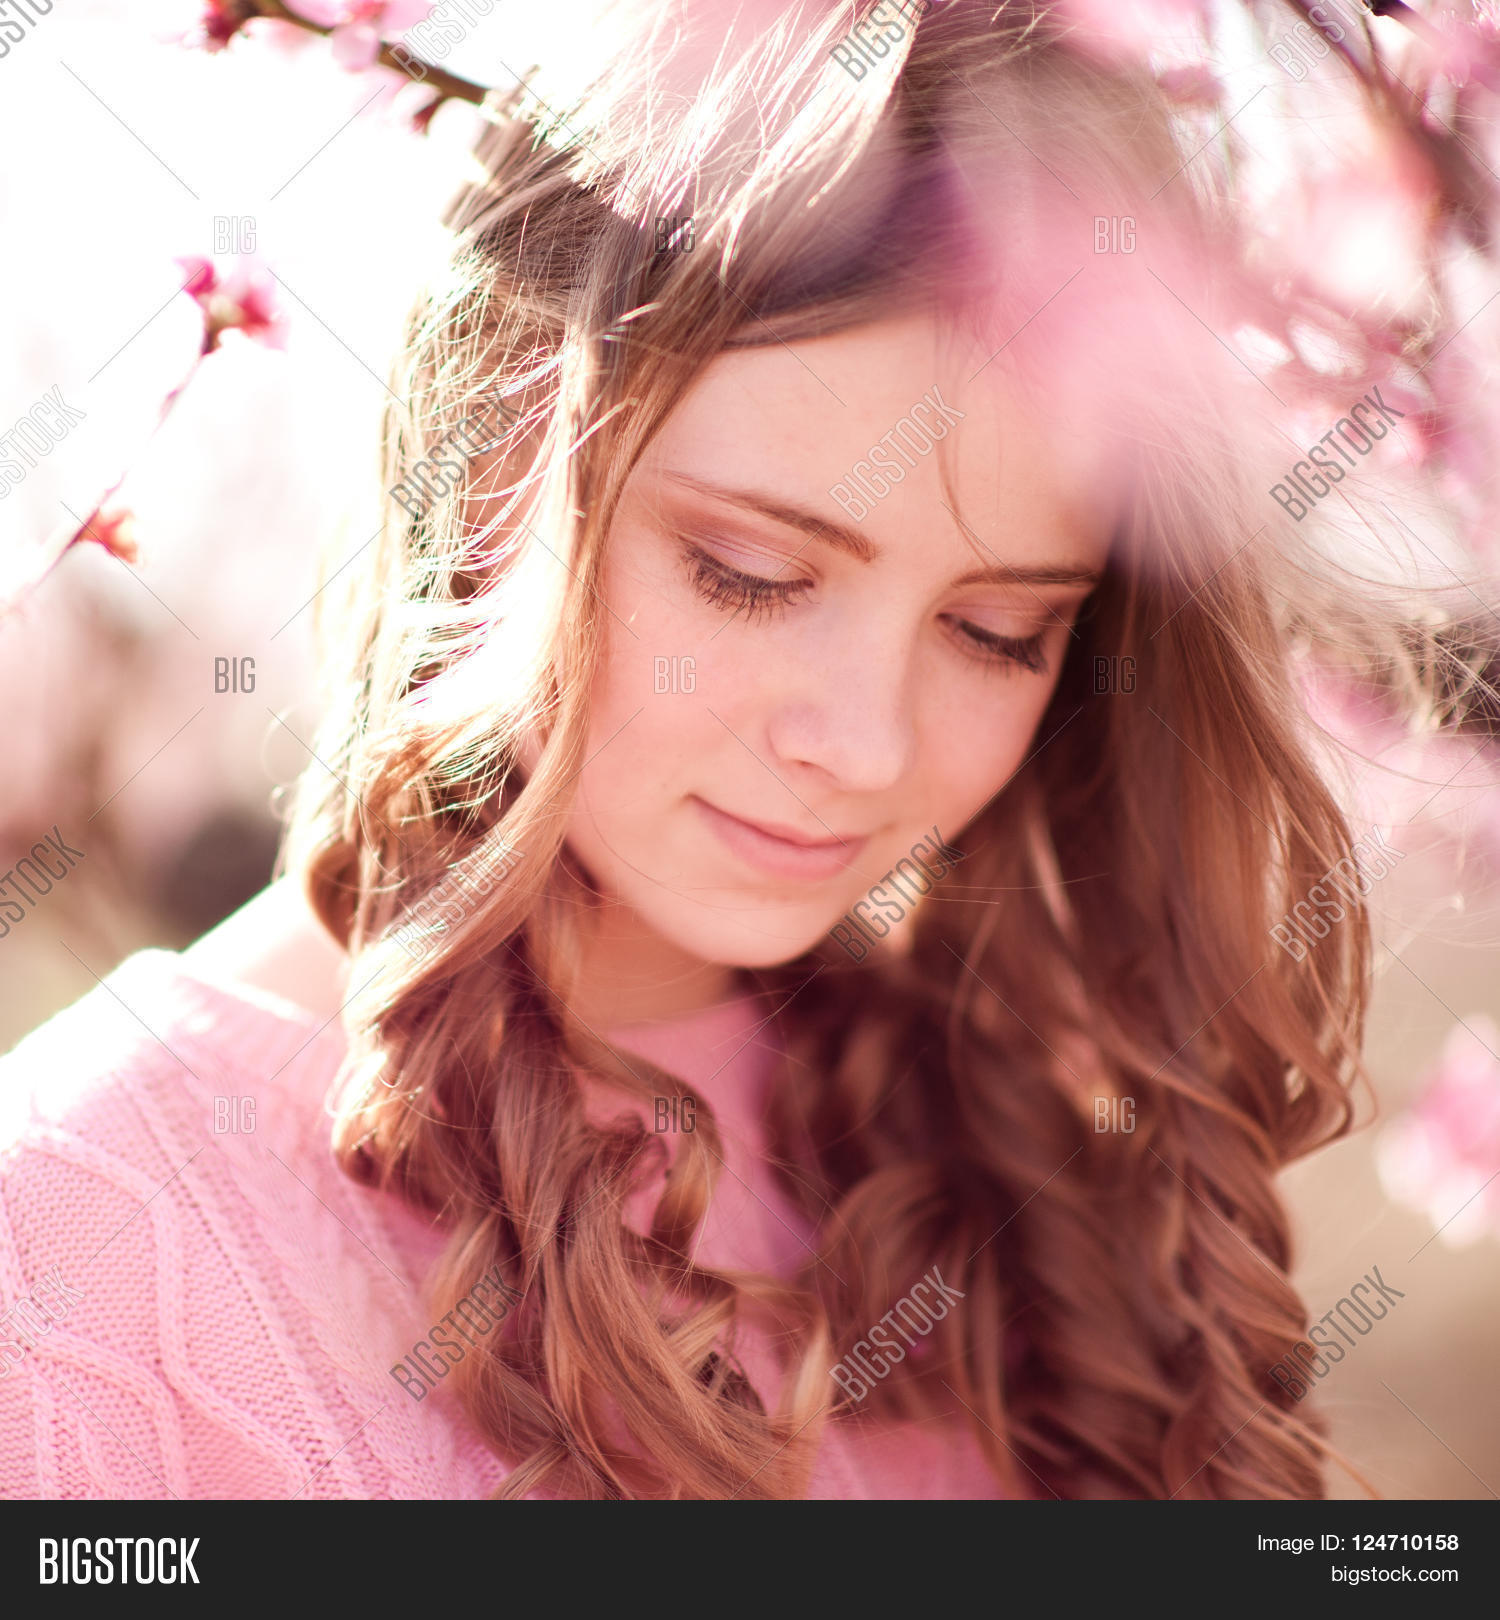 Pretty Girl With Brown Hair 16: Beautiful Teen Girl 14 Image & Photo (Free Trial)